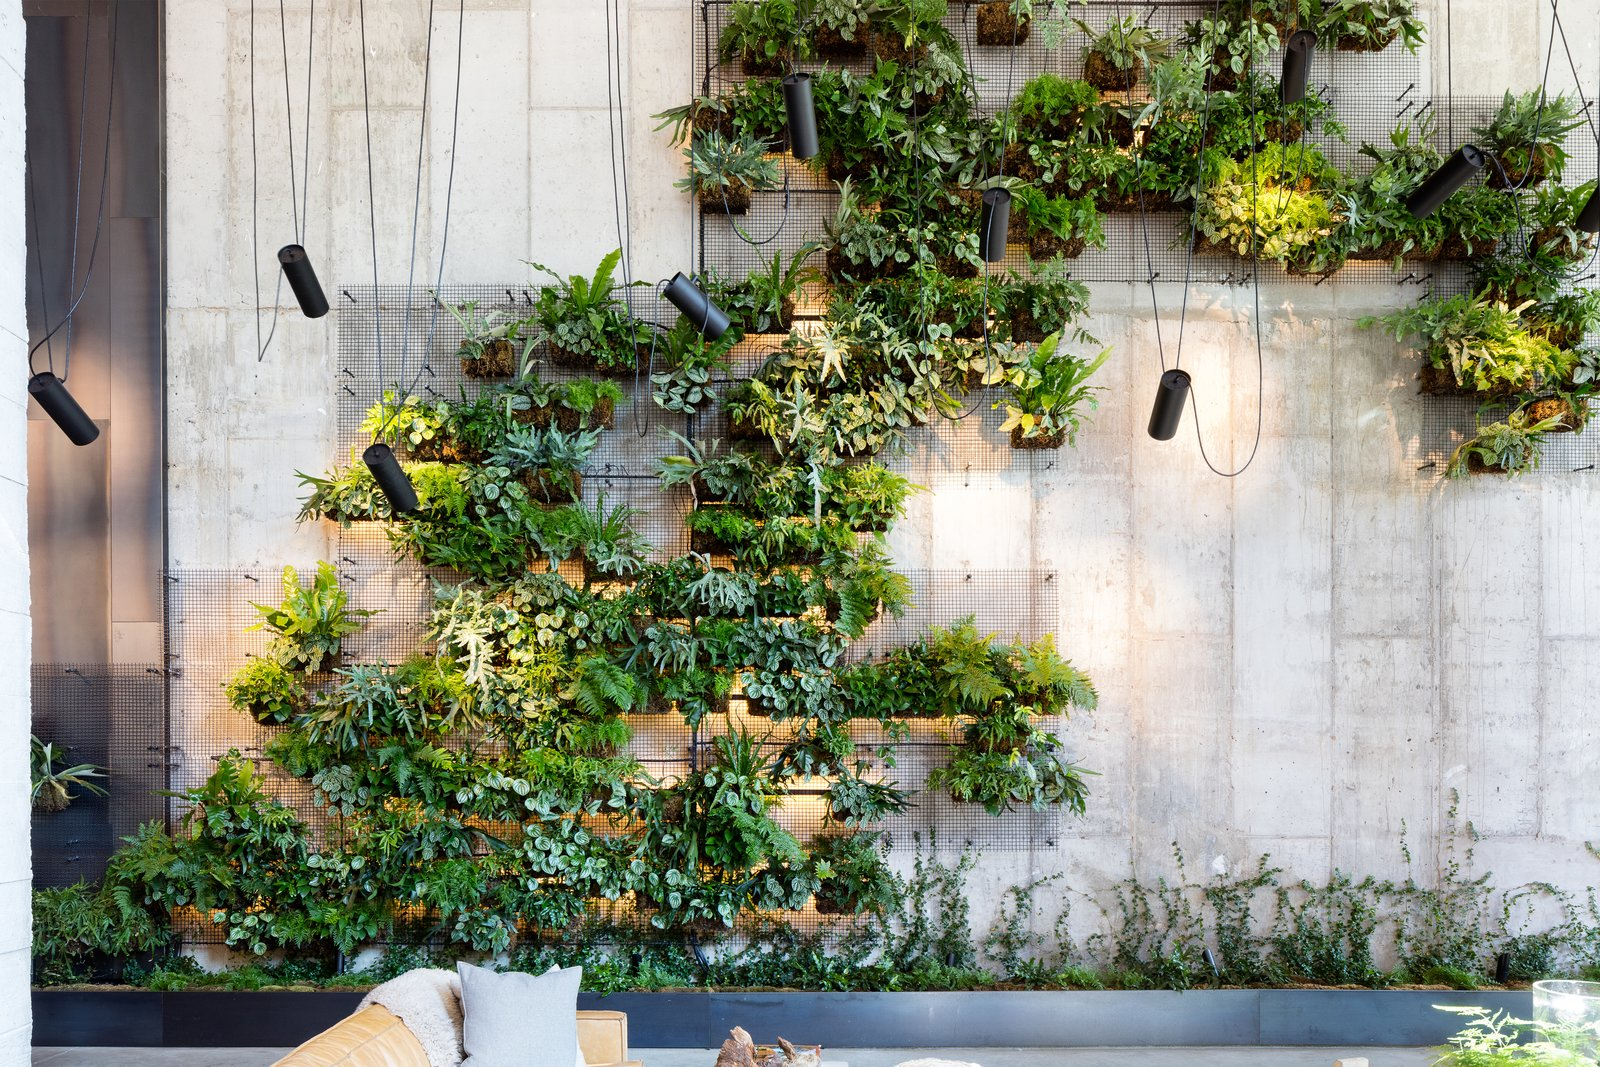 Wall: Check Out This Brooklyn Hotel's Dramatic Living Wall